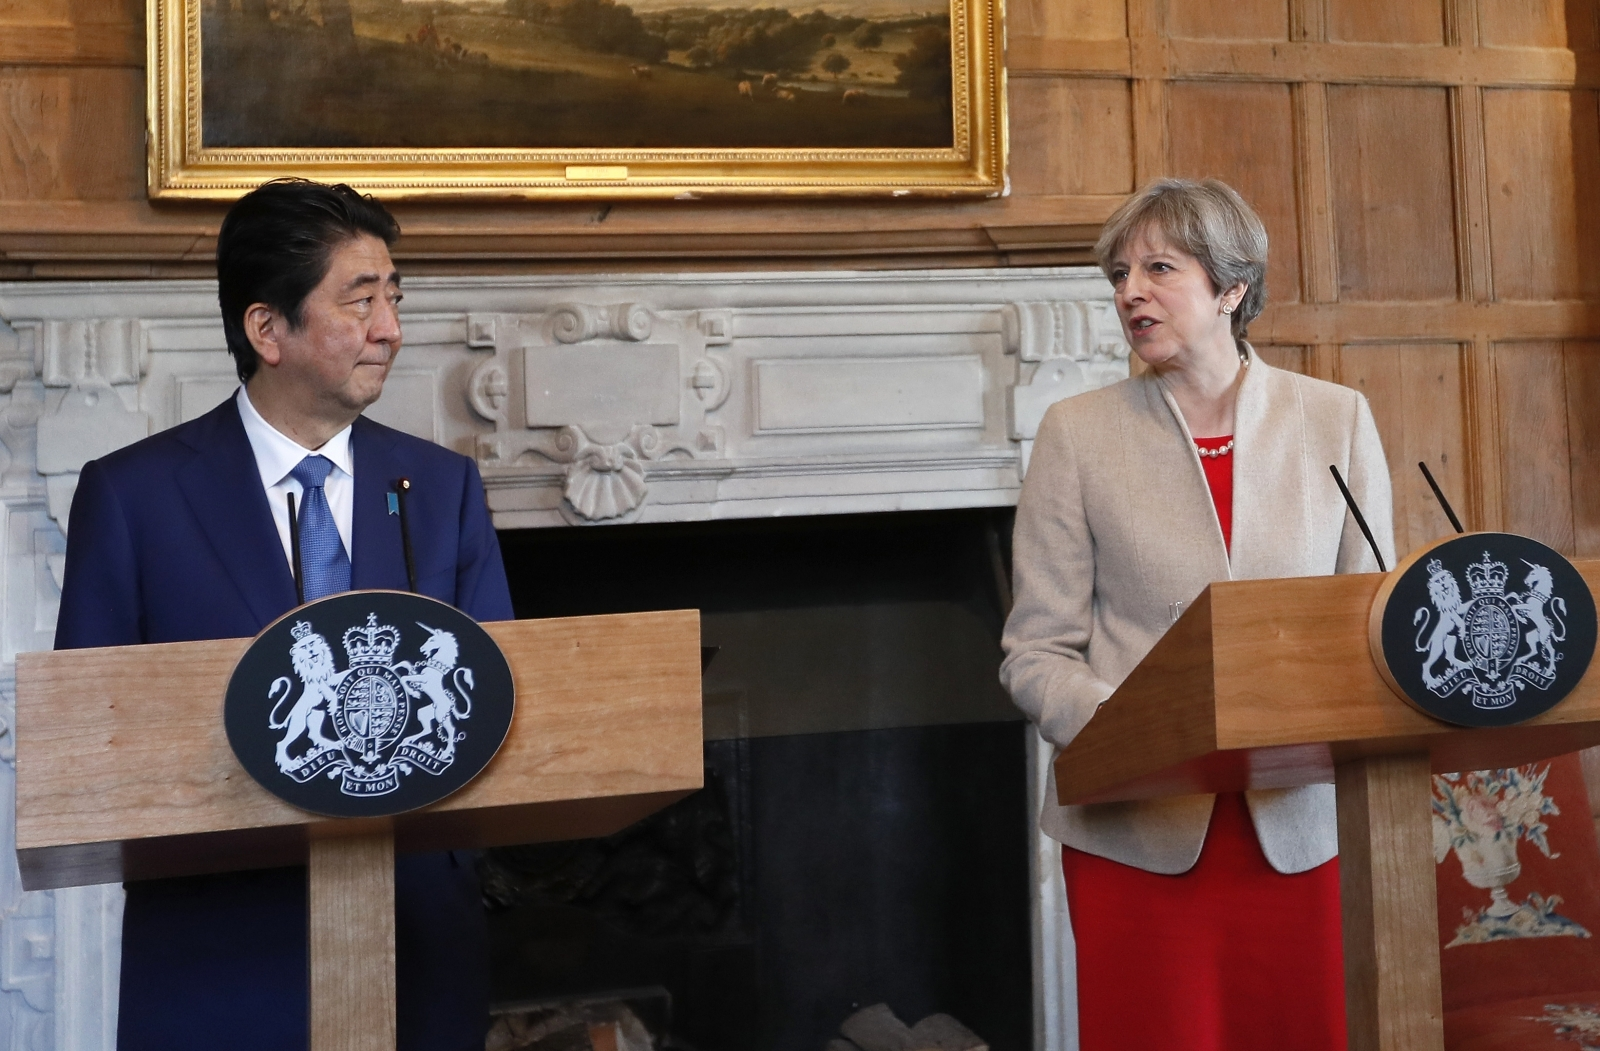 Theresa May and Shinzō Abe